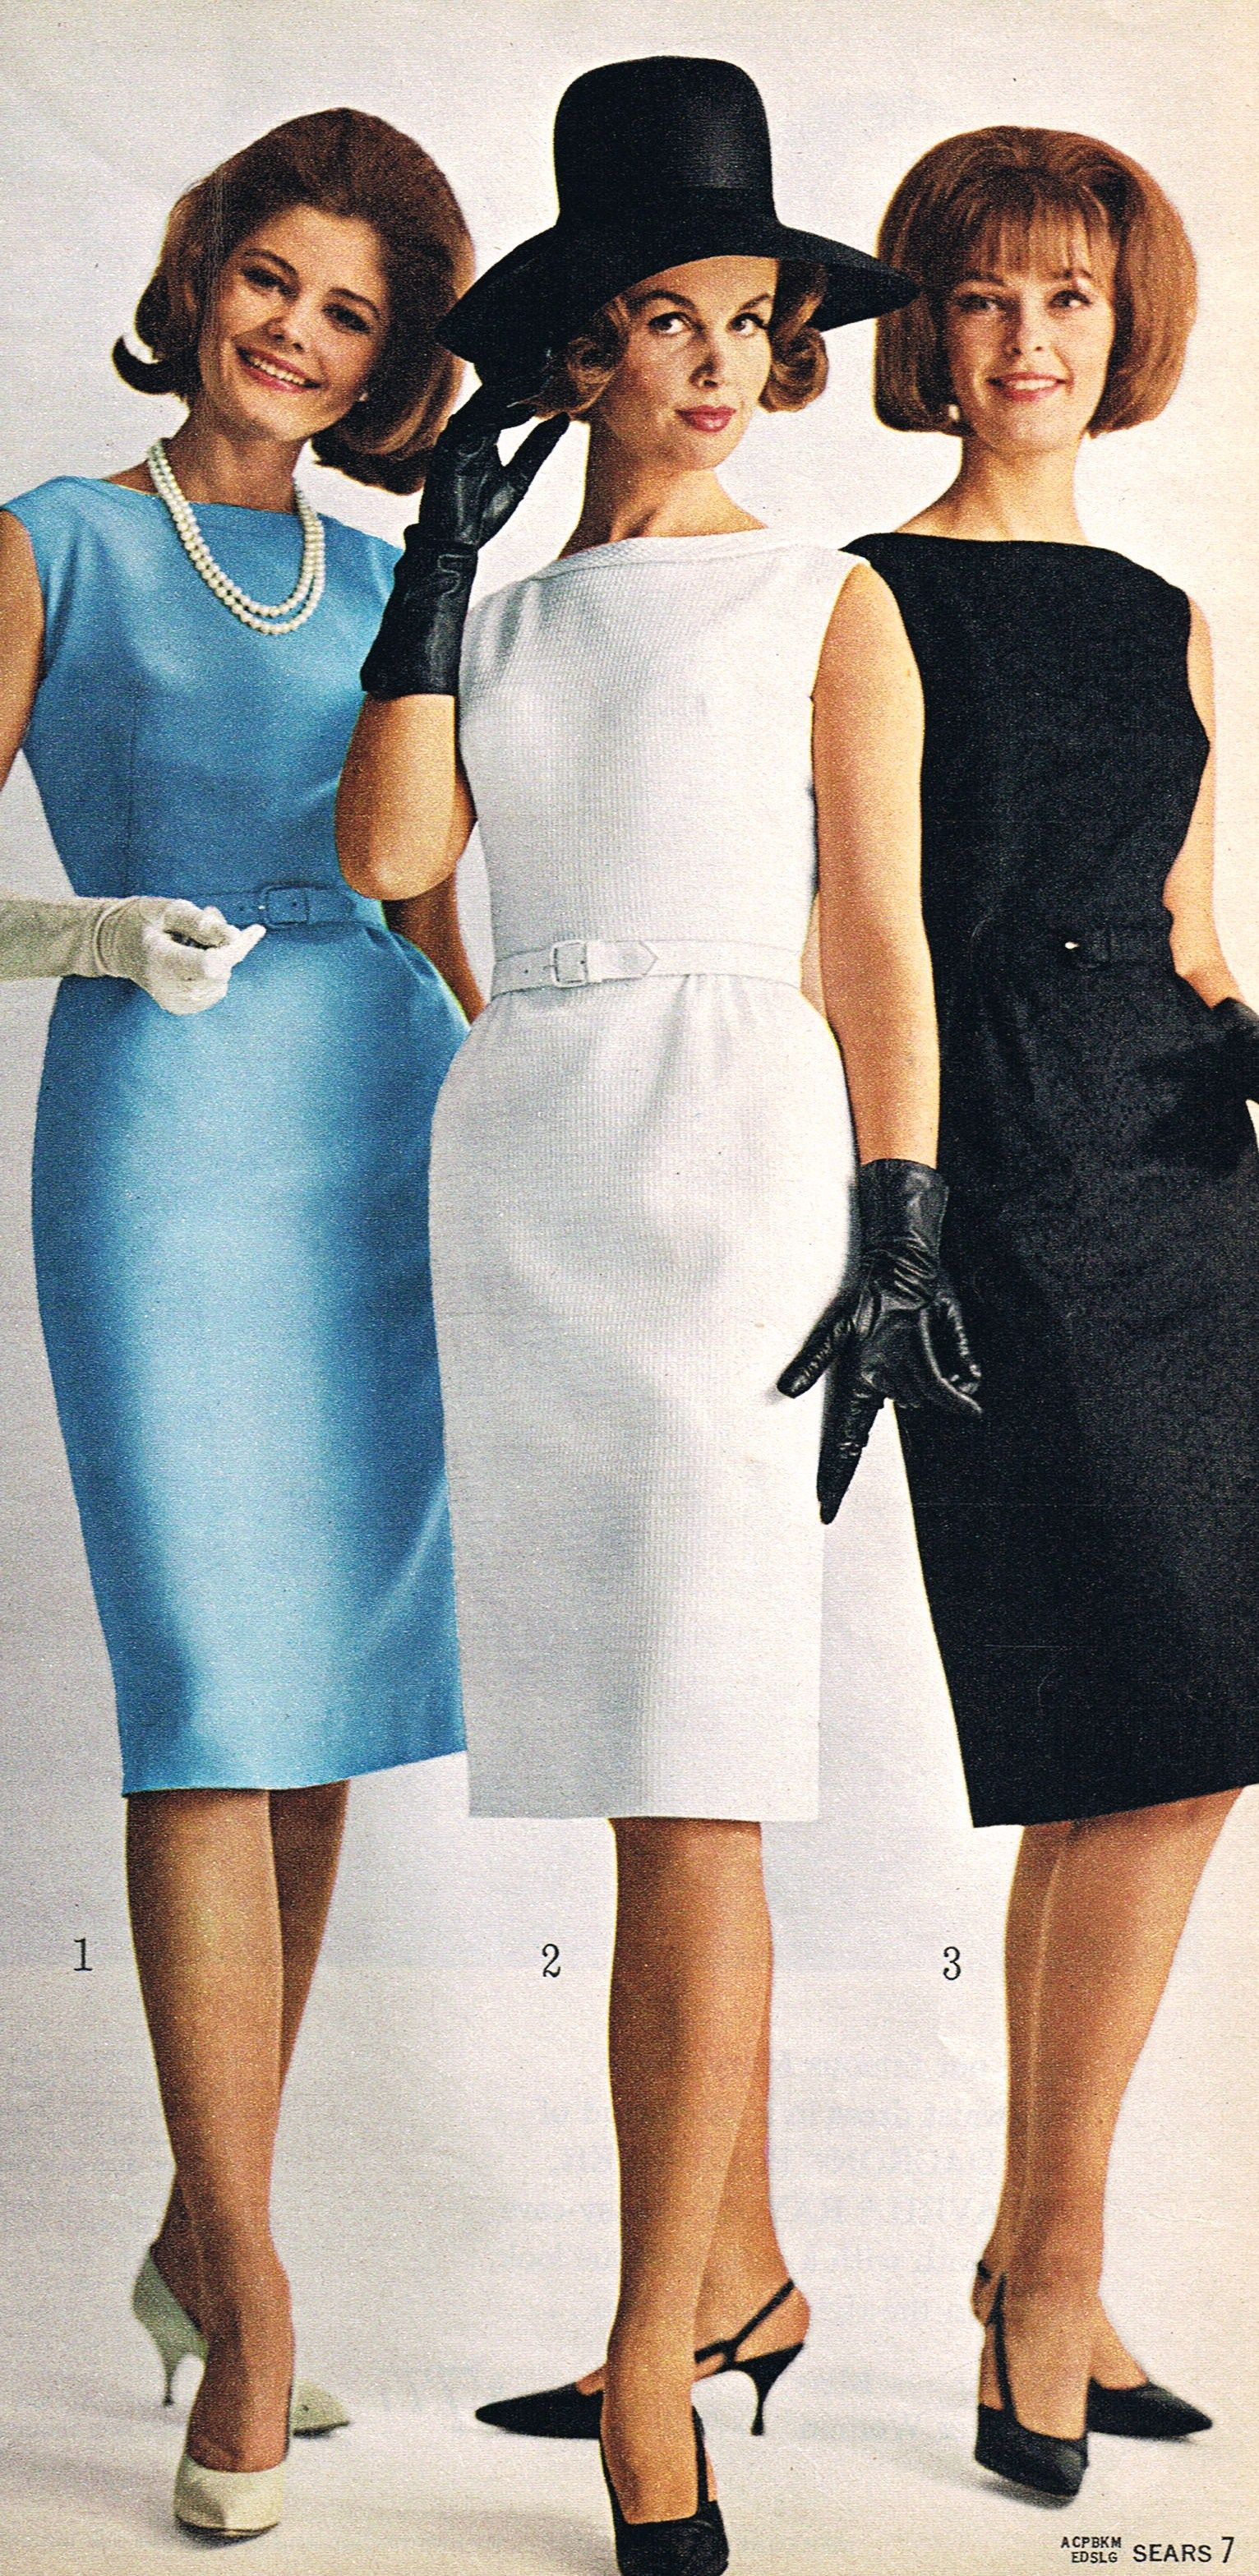 Sears 1964 Vintage Fashion Style Color Photo Print Ad